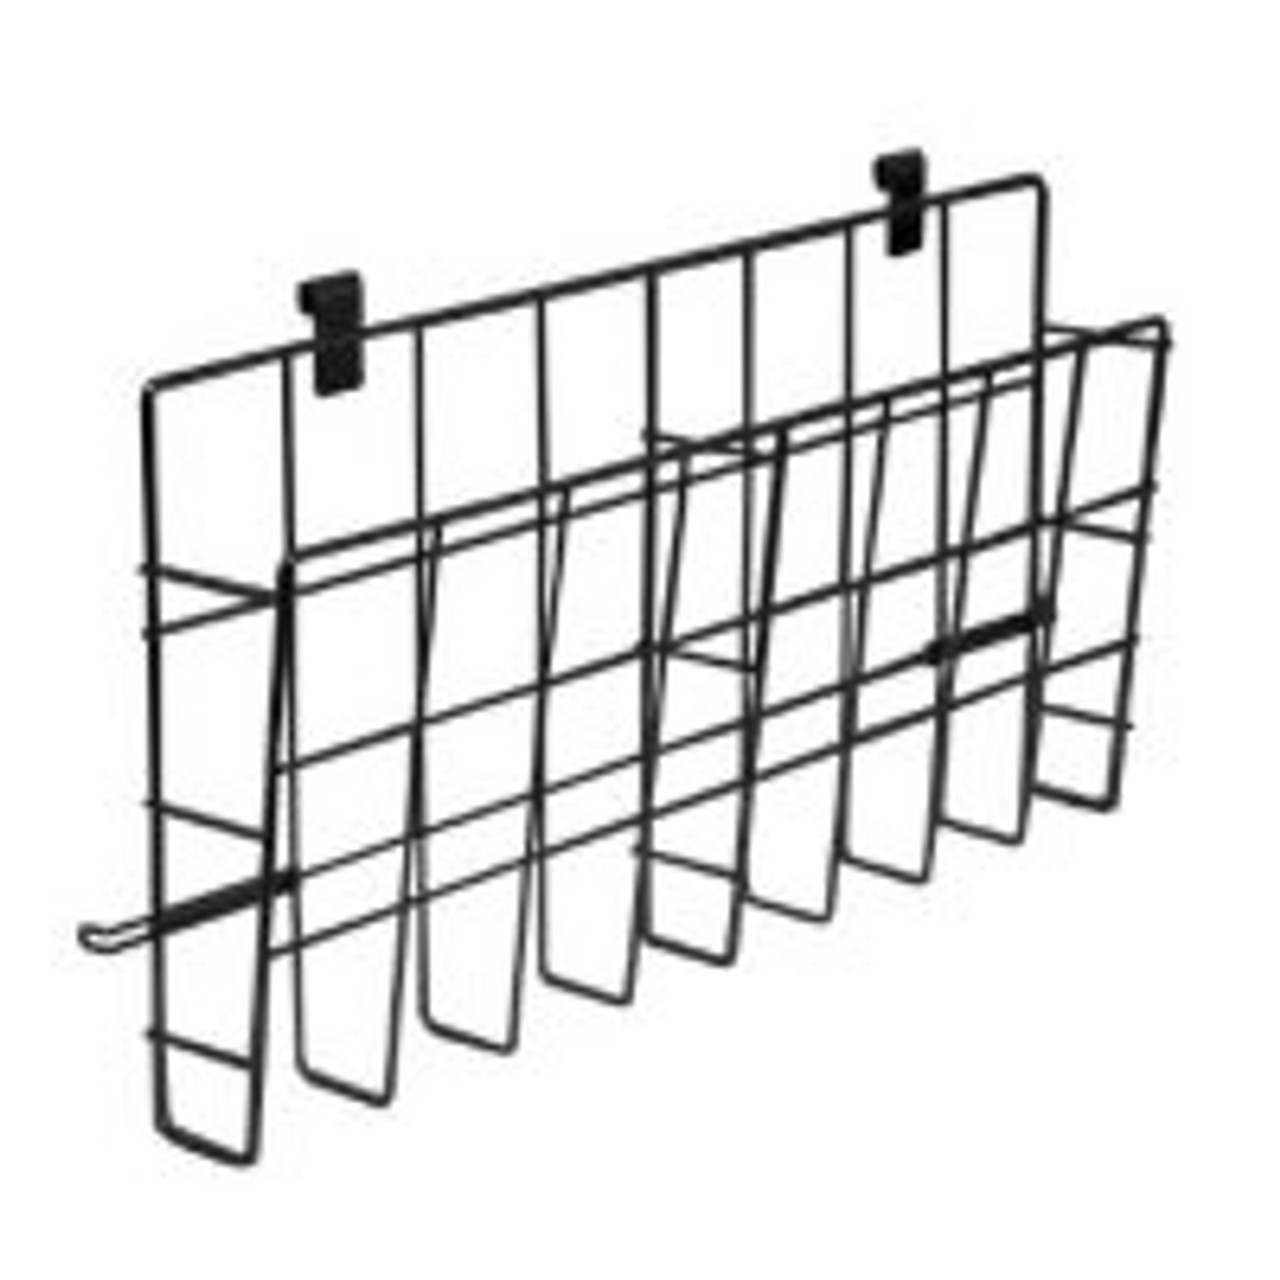 Upright Wire Basket Literature Holder - Attaches to Poster Stand 1/Pack